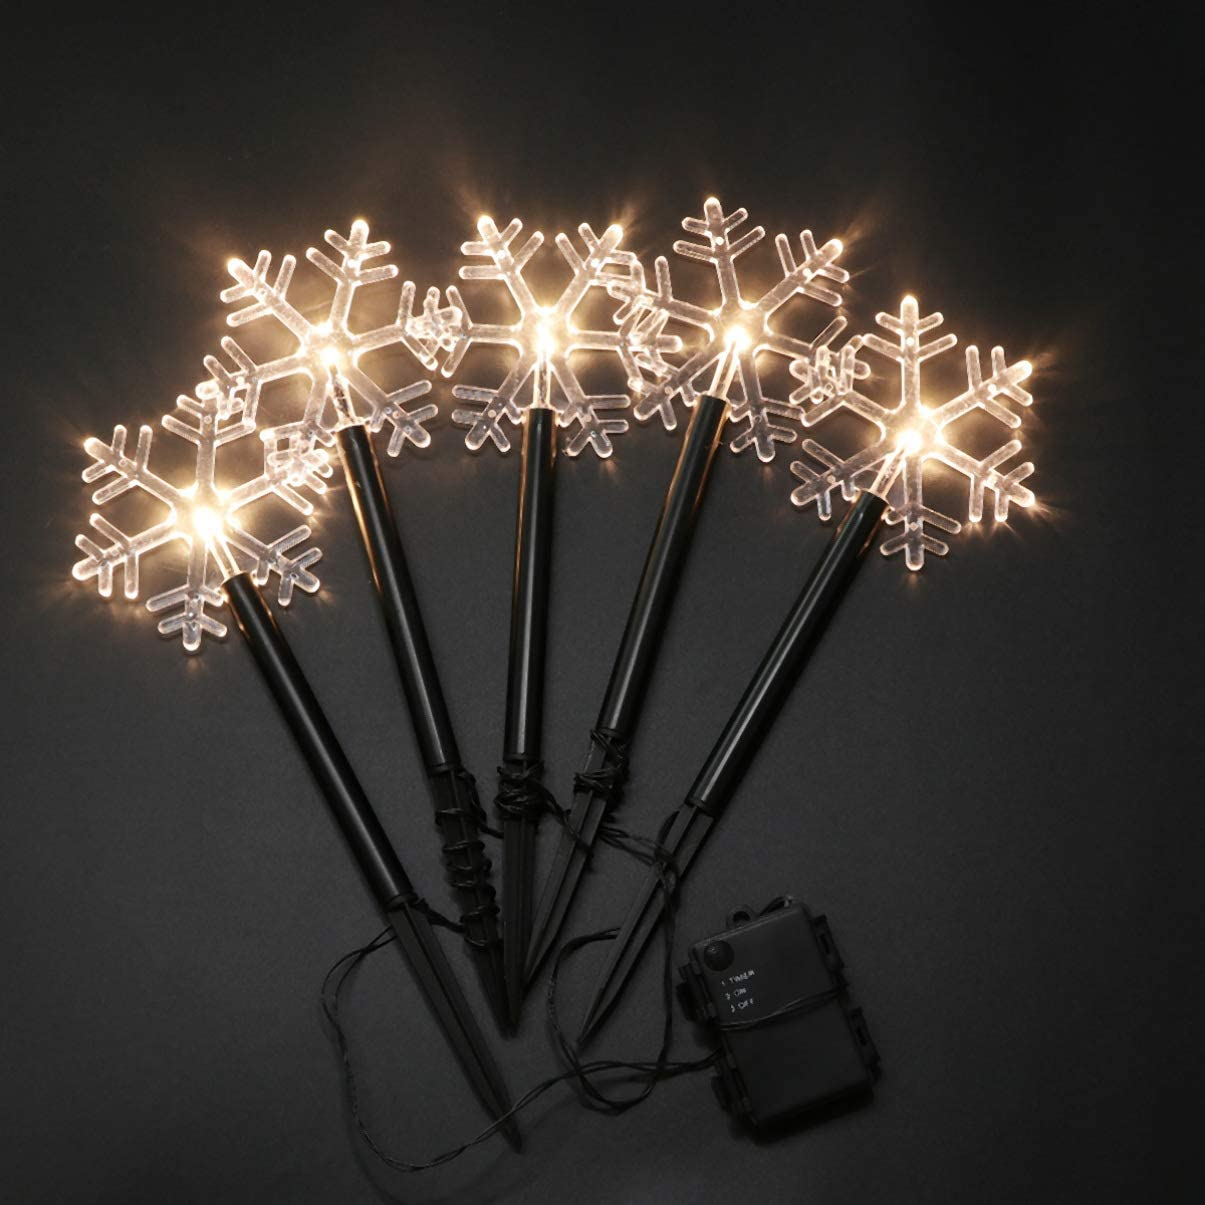 Uonlytech Christmas Snowflake Garden Lights Battery Operated Snowflake Lights Outdoor Waterproof Christmas Decorative Ground Lights Lawn Night Light